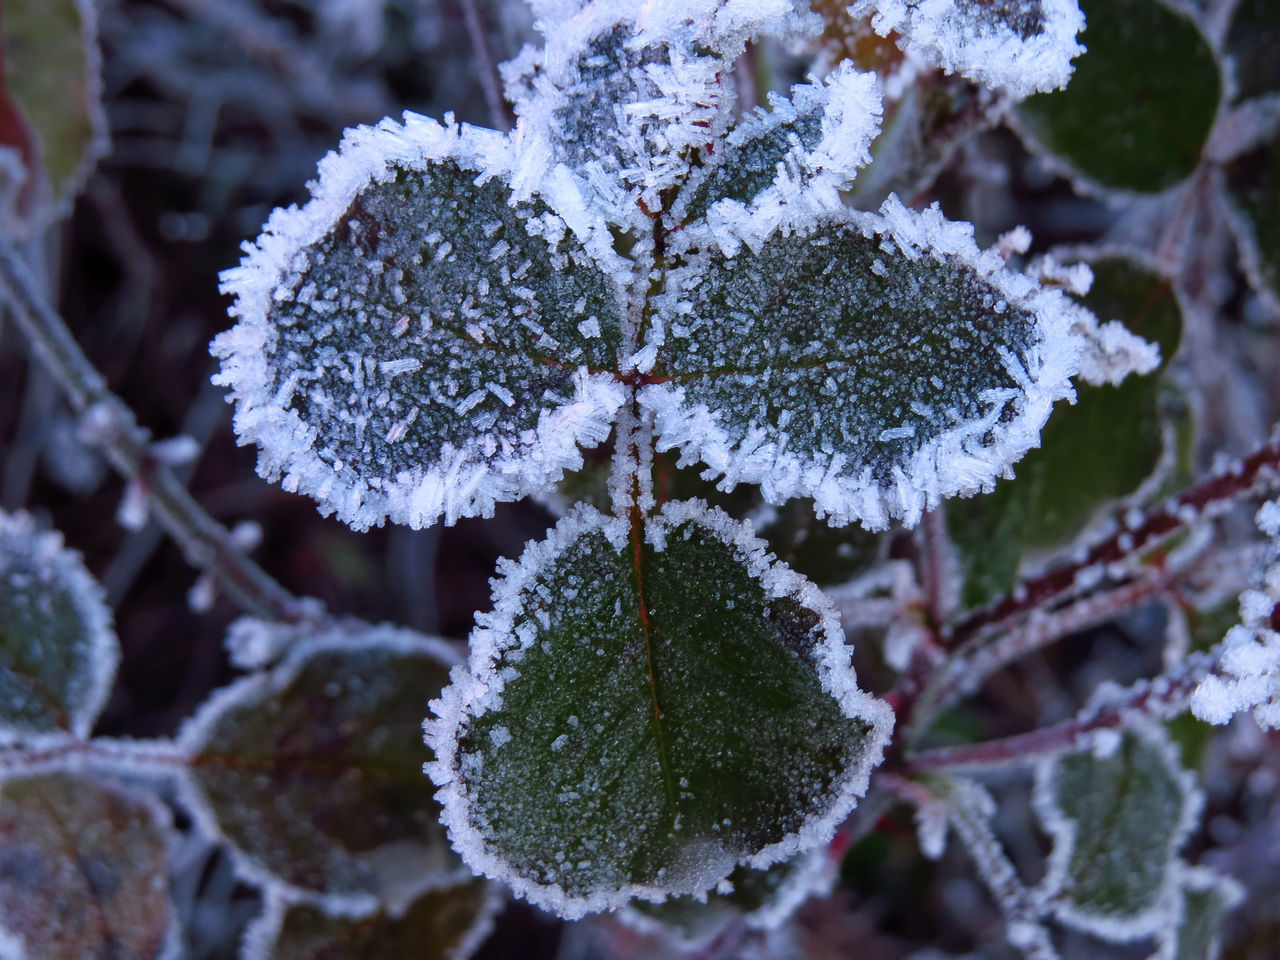 Cold Days Cold Temperature Cold Weather Foliage Frost Frostbite Frosty Frosty Leaves Frosty Mornings Frosty Nature Frozen Frozen Nature Hoar Frost Hoarfrost Icy Leaves Rime White Frost Winter Winter Scene Winter Scenery Winter Season Winter Wonderland Winter_collection Wintertime